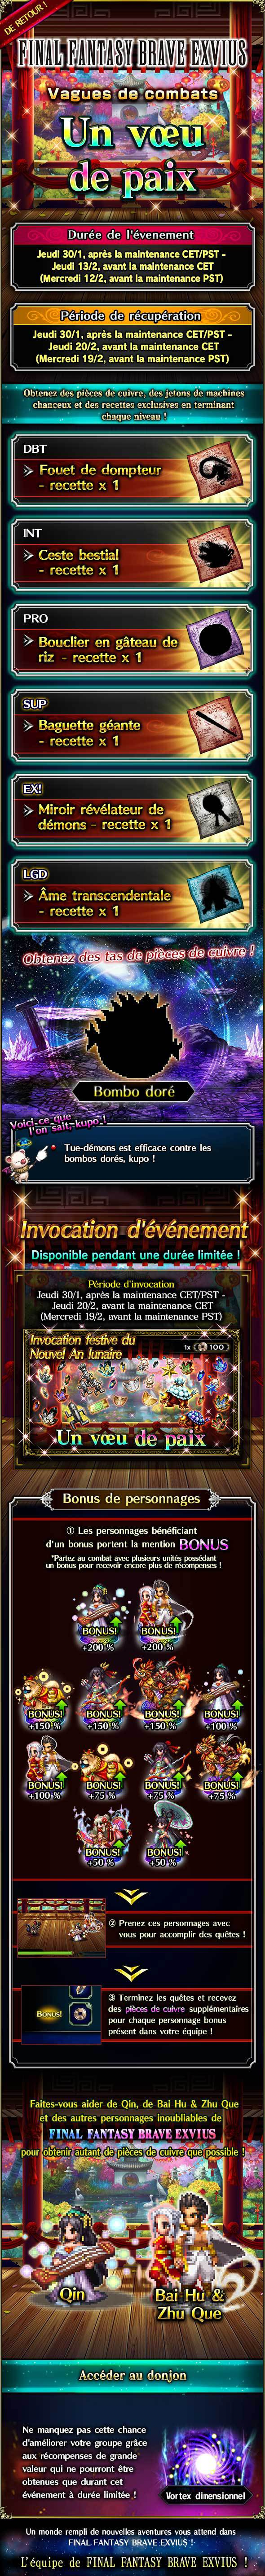 Evenement FFBE (vague de combat) - Un voeu de paix (rerun) - du 30/01 au 13/02/20 20200128YearningForPeaceRerun